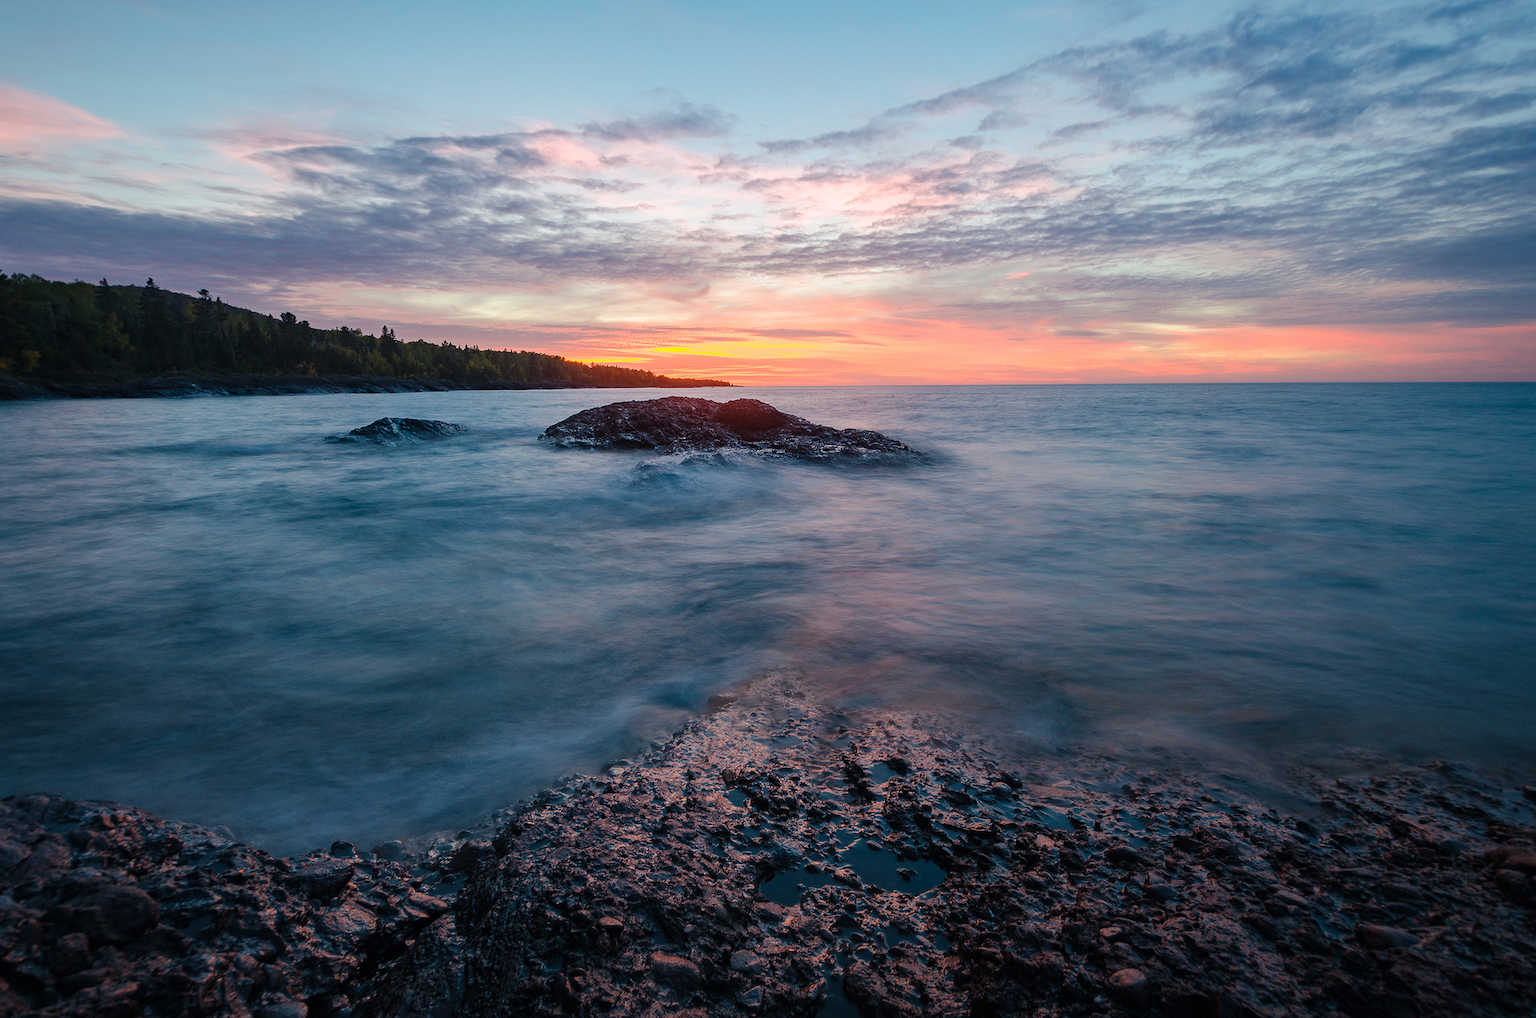 Scientists have discovered that Lake Superior shifts from absorbing and storing carbon dioxide to releasing it into the atmosphere.